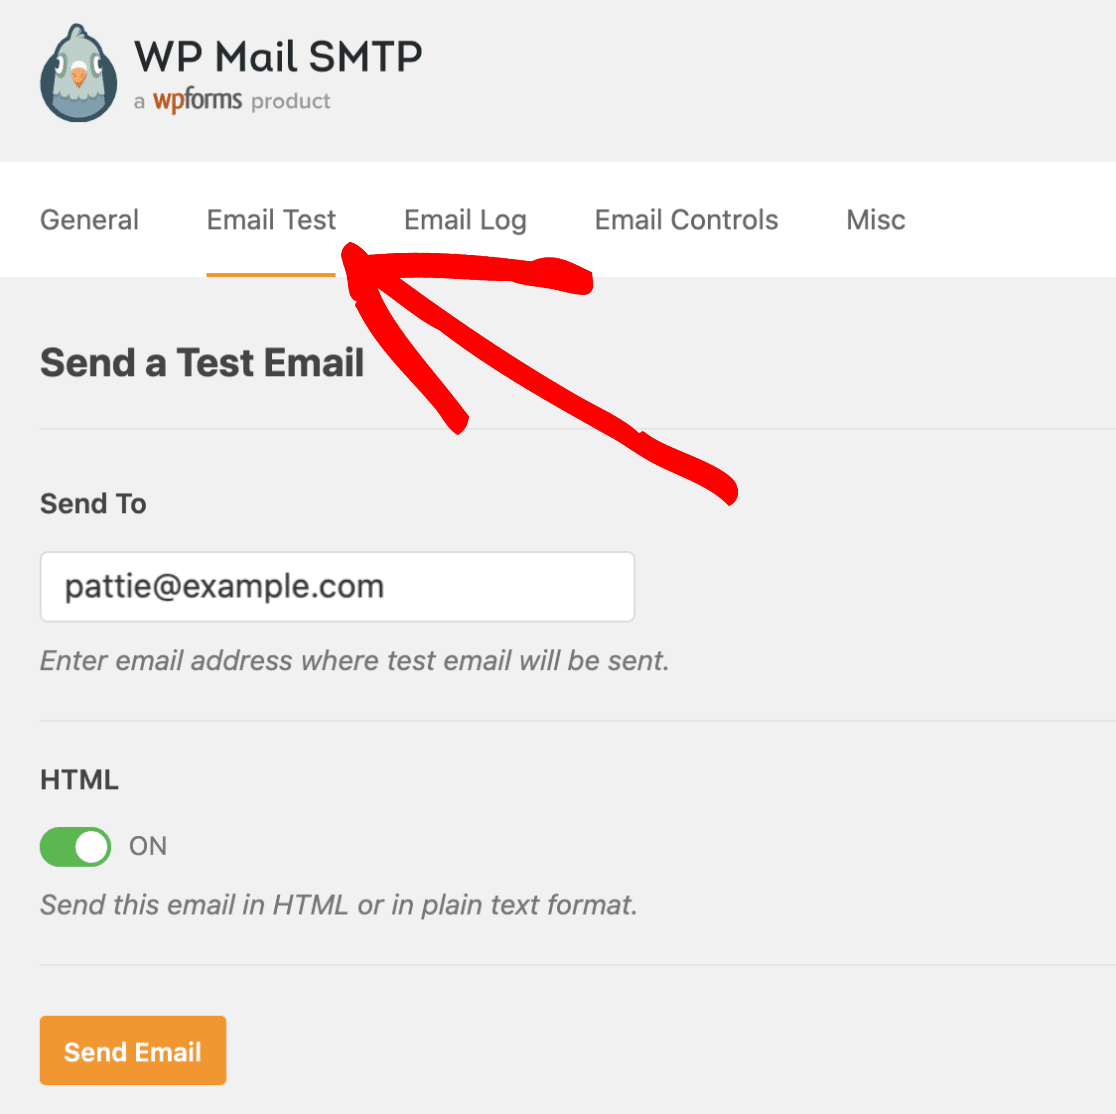 Open the Email Test tab in WP Mail SMTP